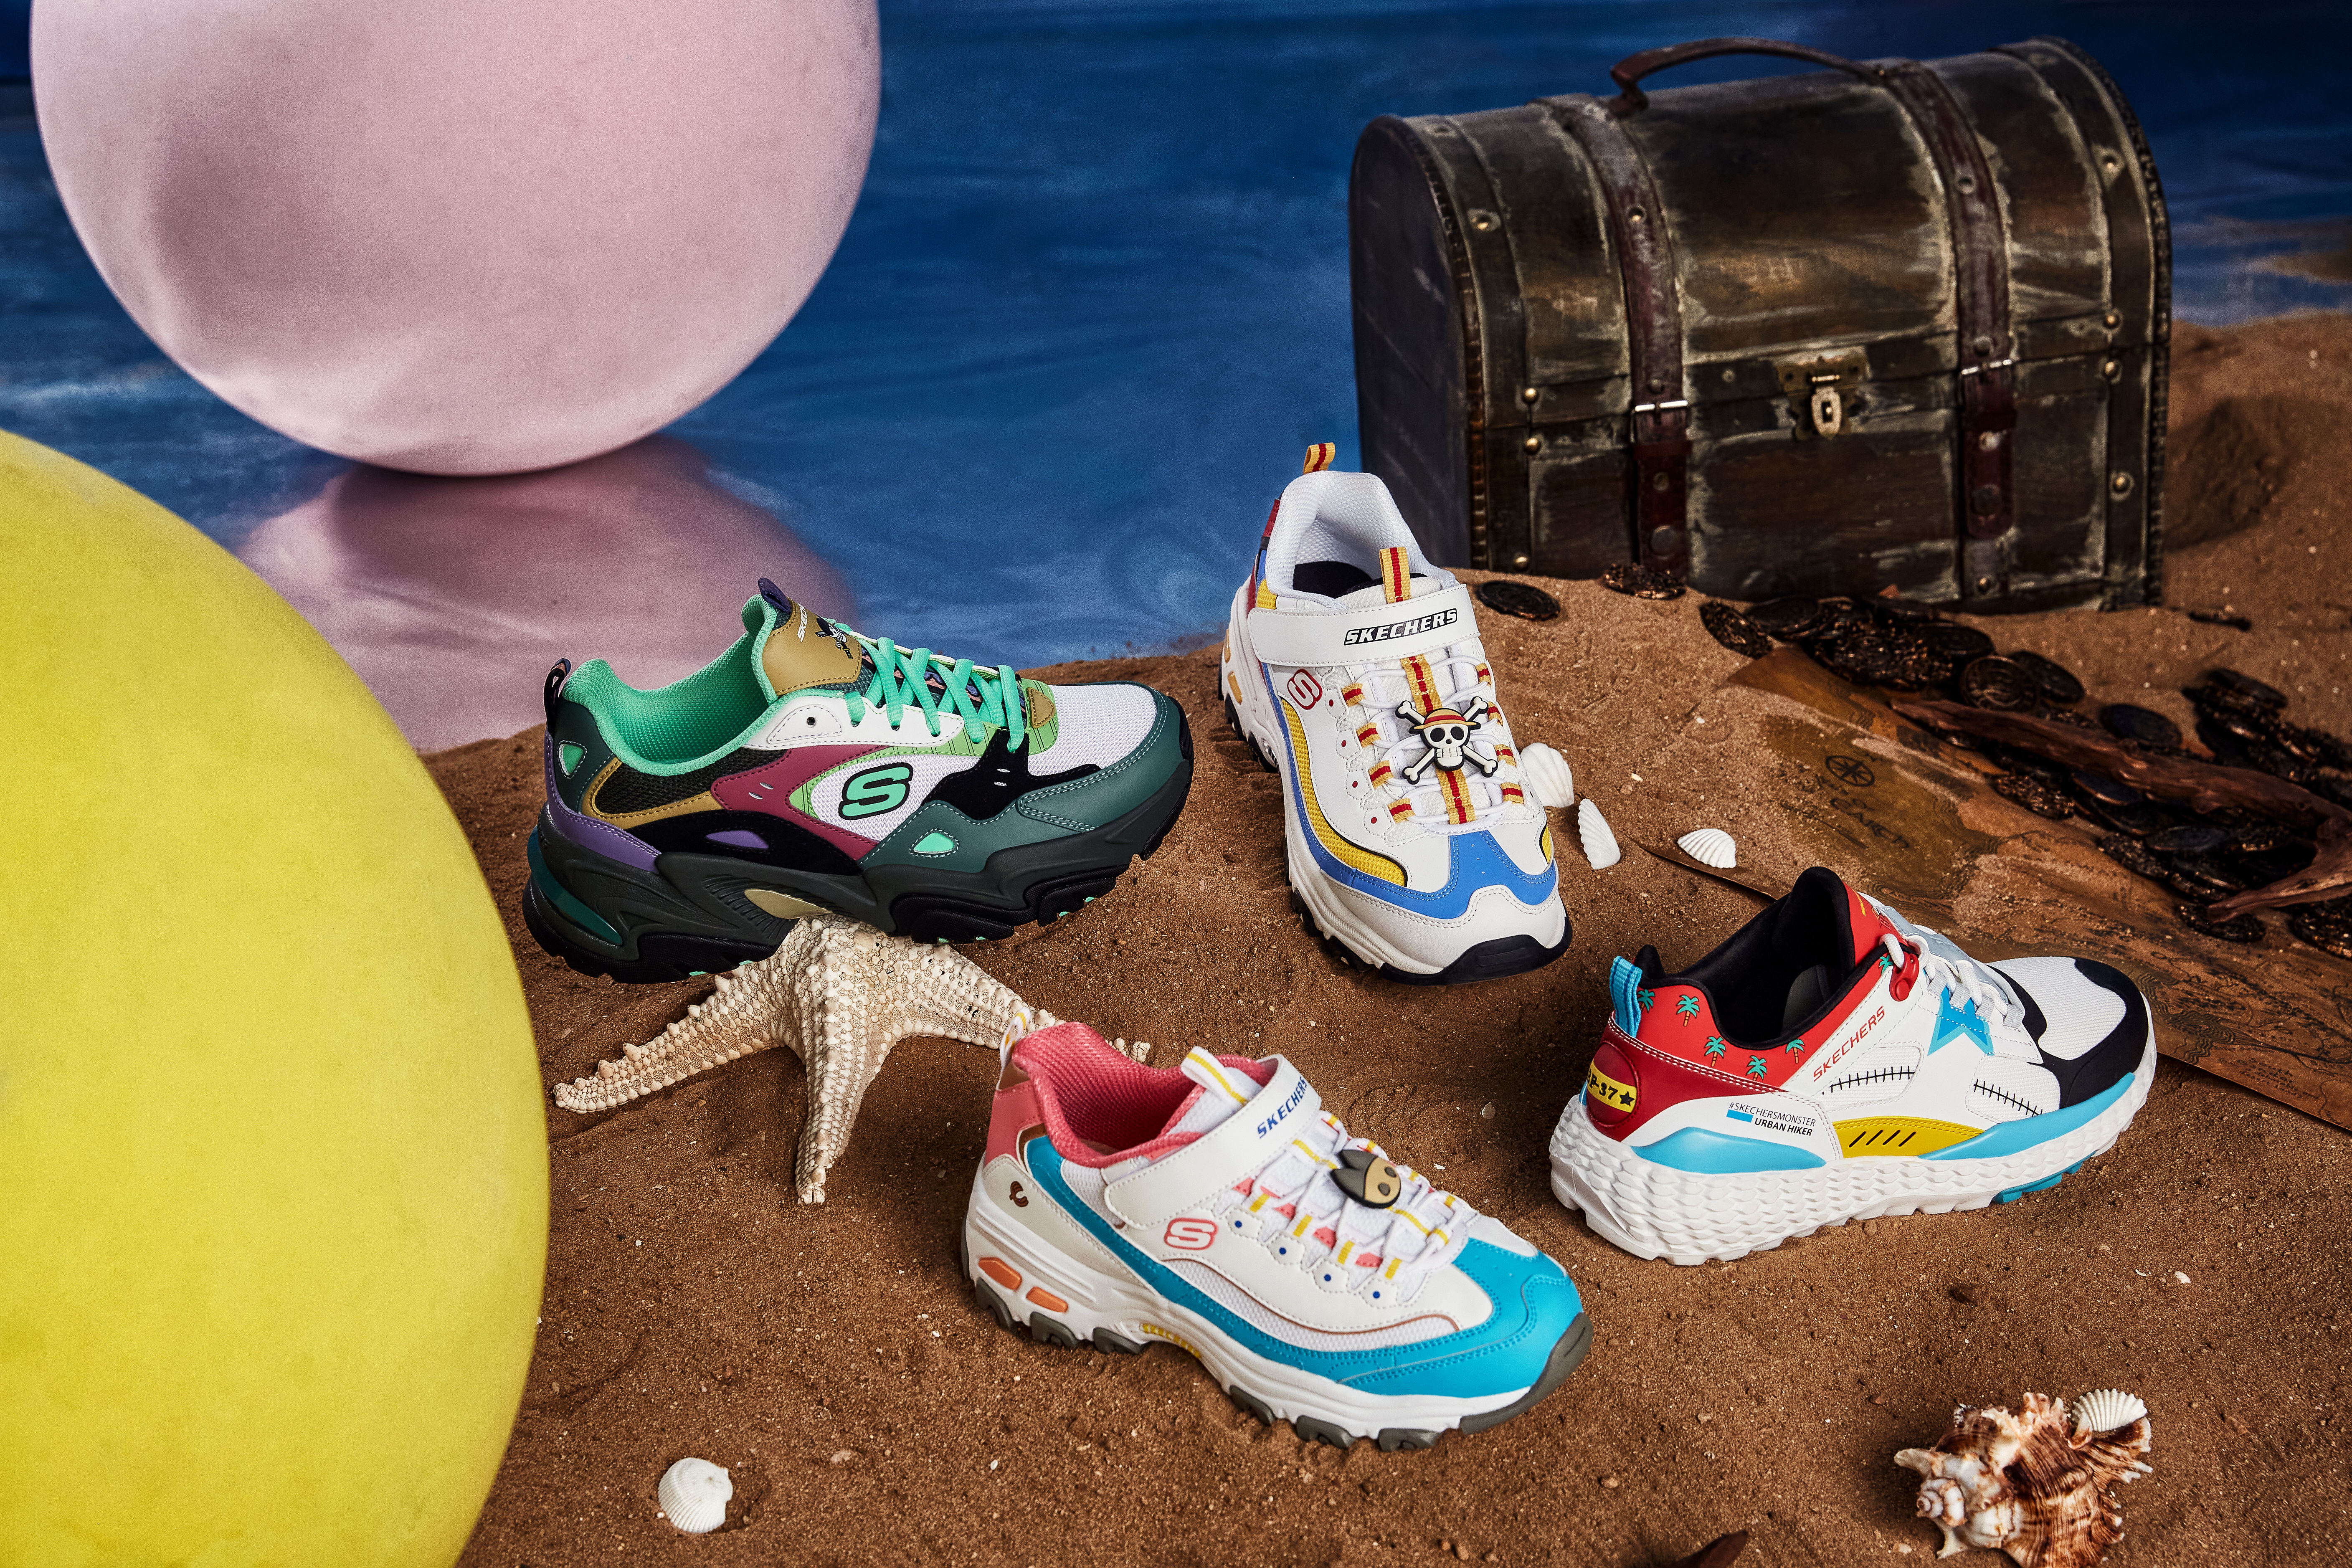 Skechers x One Piece Collection